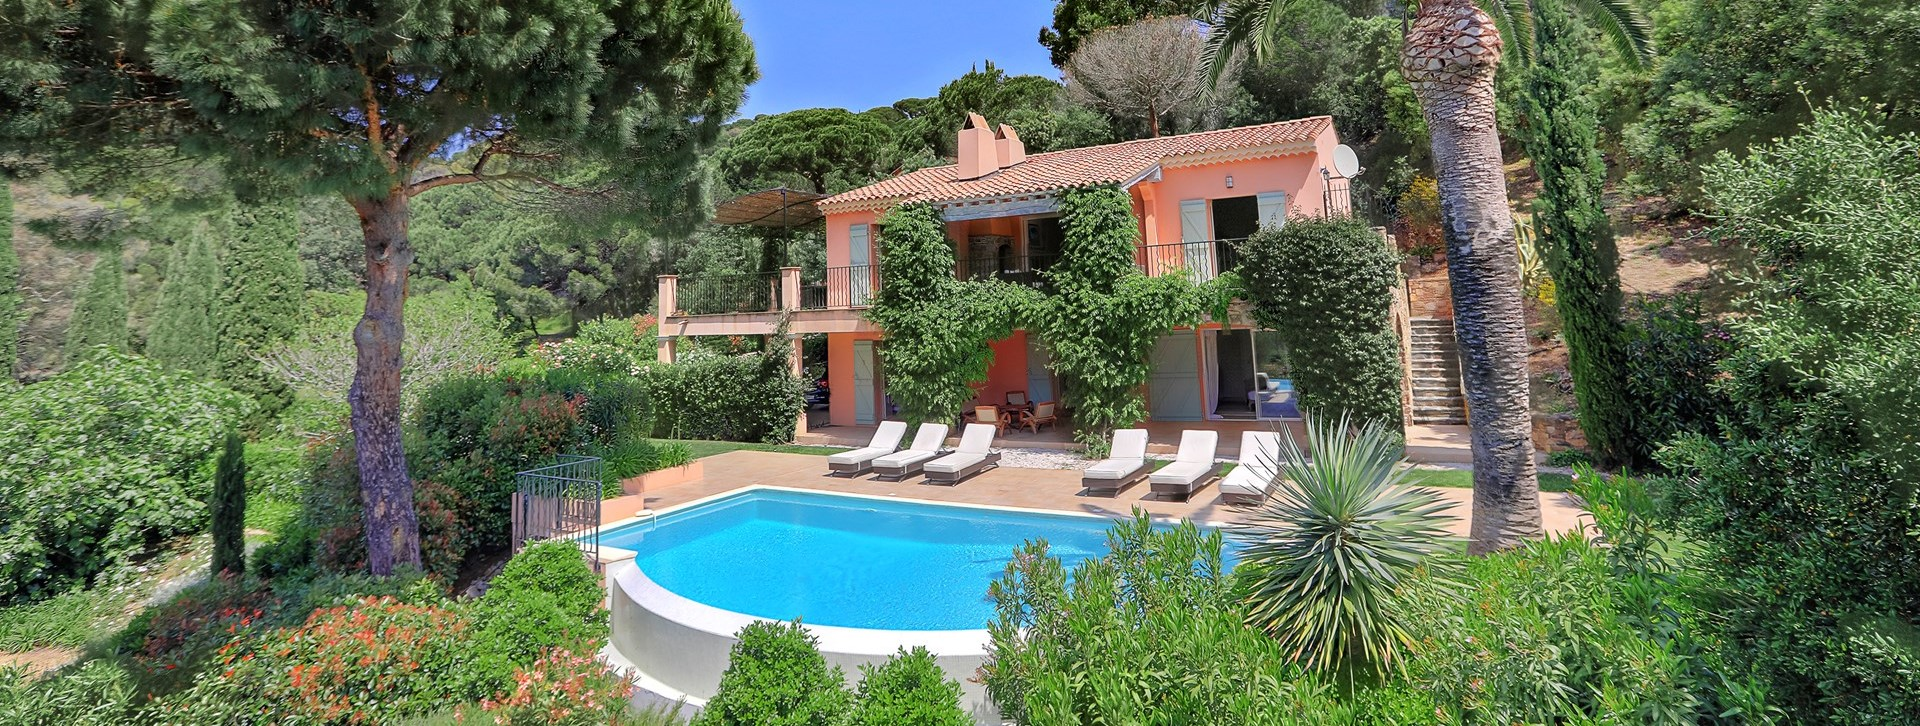 luxury-villa-holidays-south-of-france